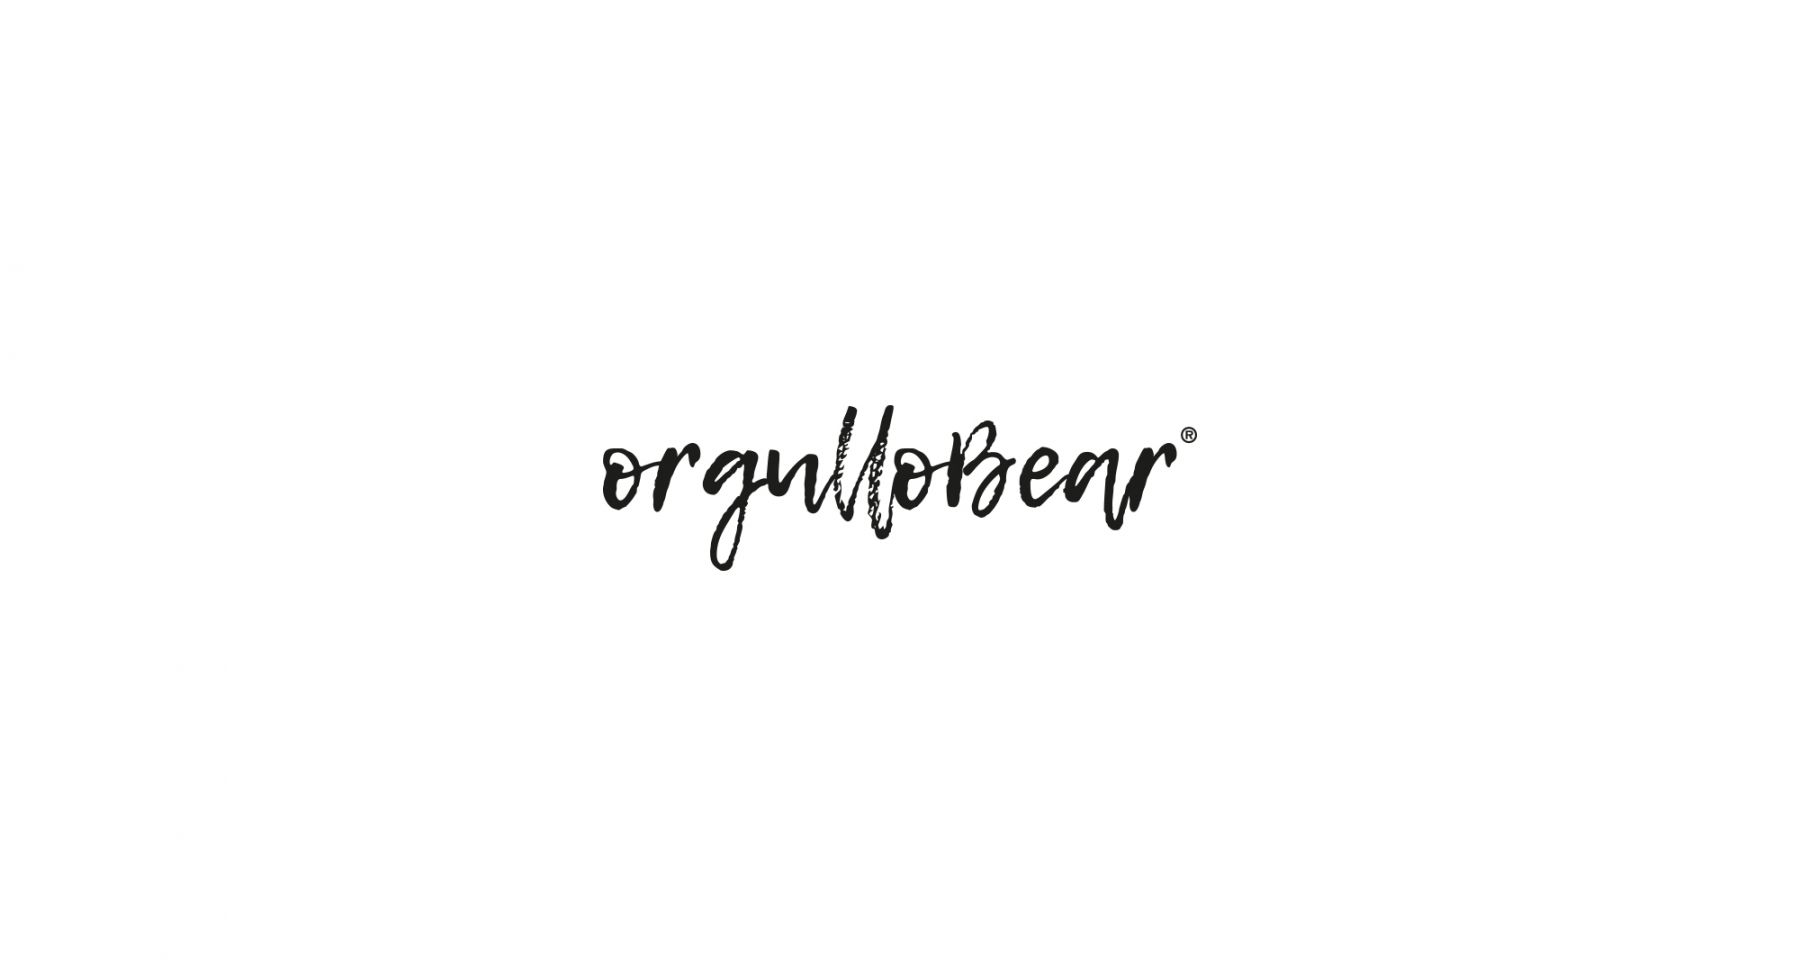 orgullo-bear-naming-diseno-etiqueta-packaging-agencia-creativa